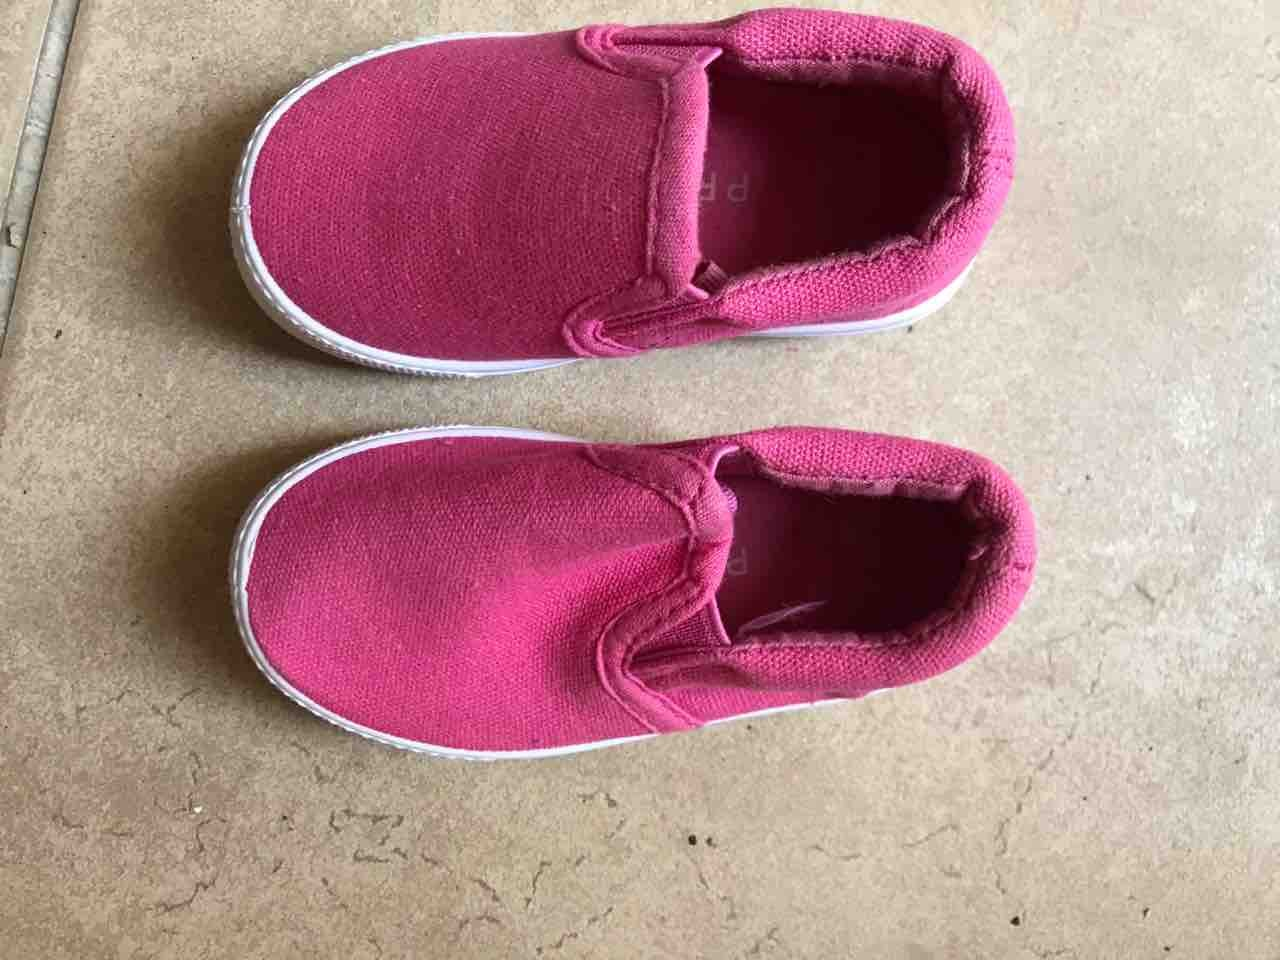 Baby pink shoes.